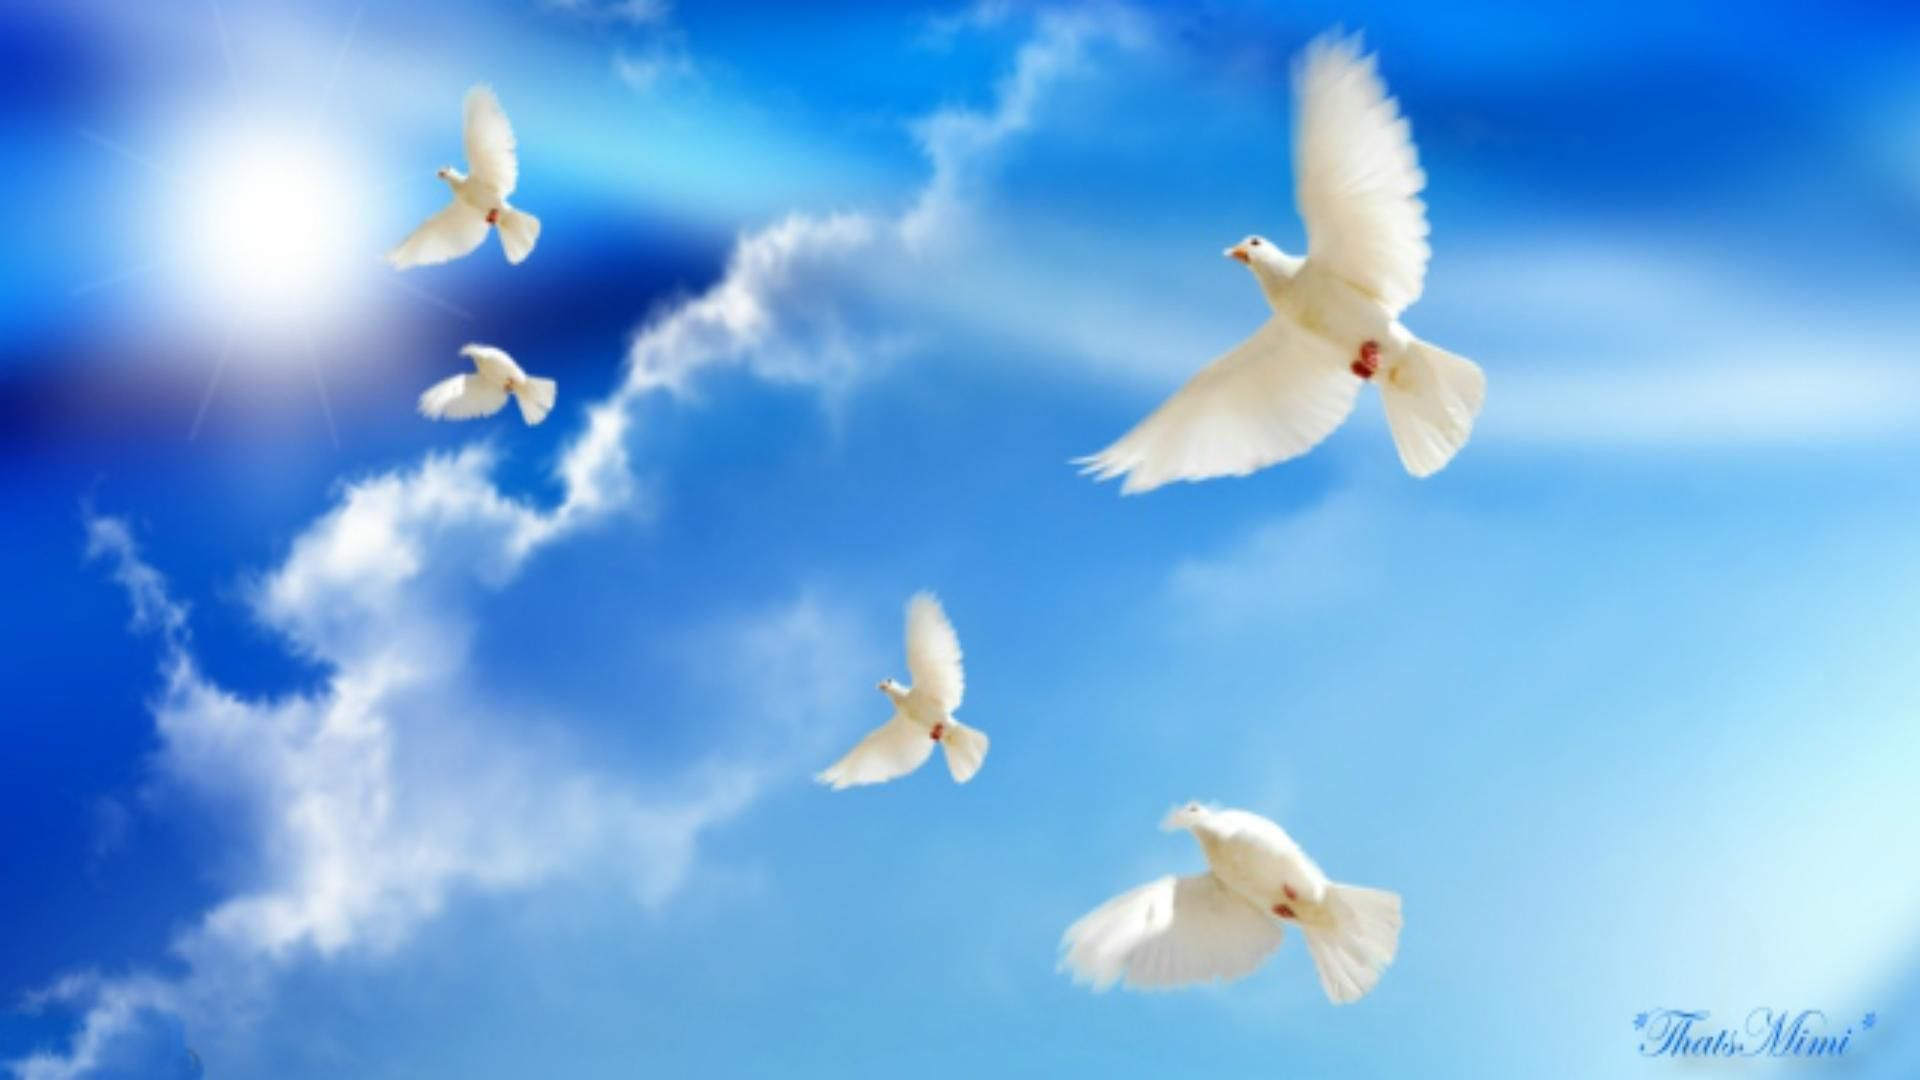 Peace Dove Wallpapers 15